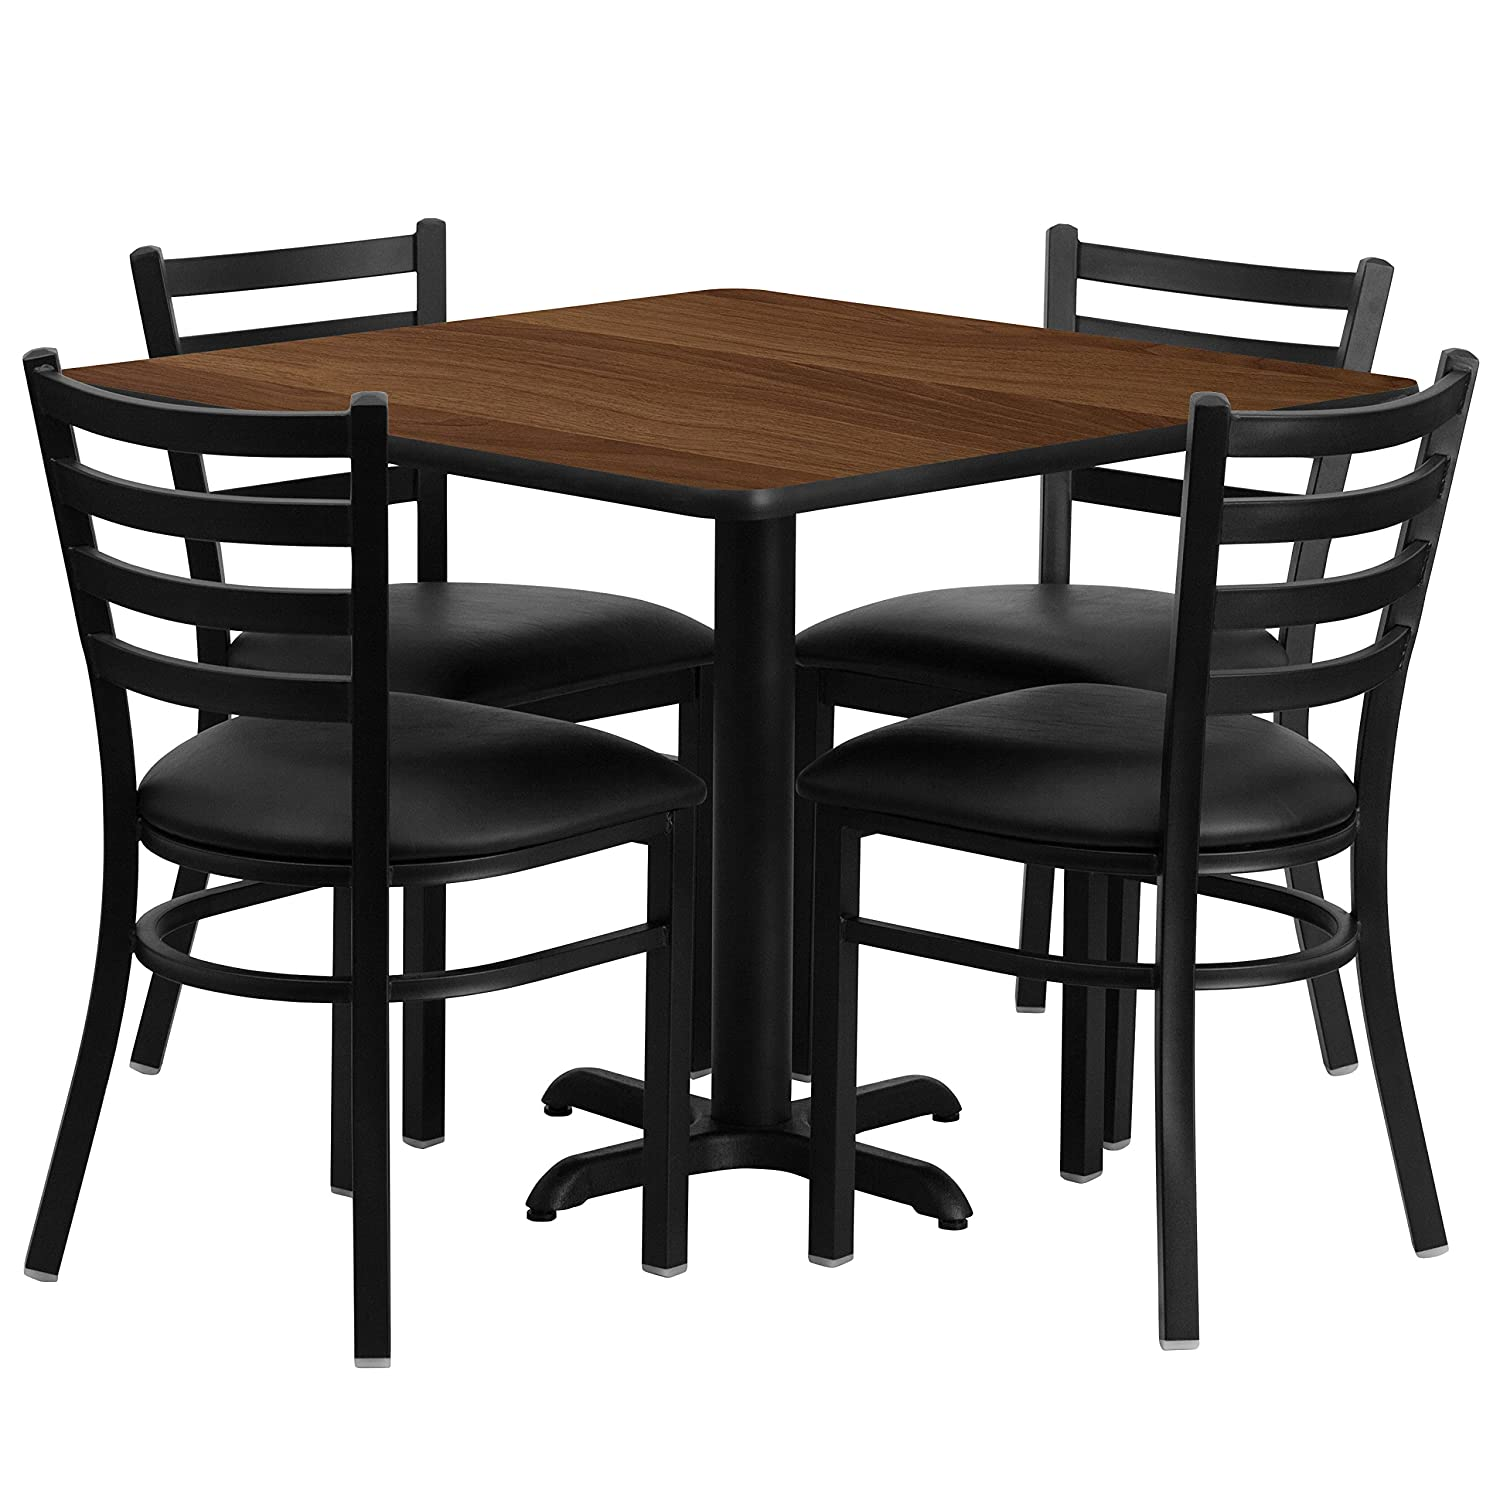 Square Table For 4 Part - 35: Amazon.com - Flash Furniture 36u0027u0027 Square Black Laminate Table Set With 4  Ladder Back Metal Chairs - Black Vinyl Seat - Table U0026 Chair Sets